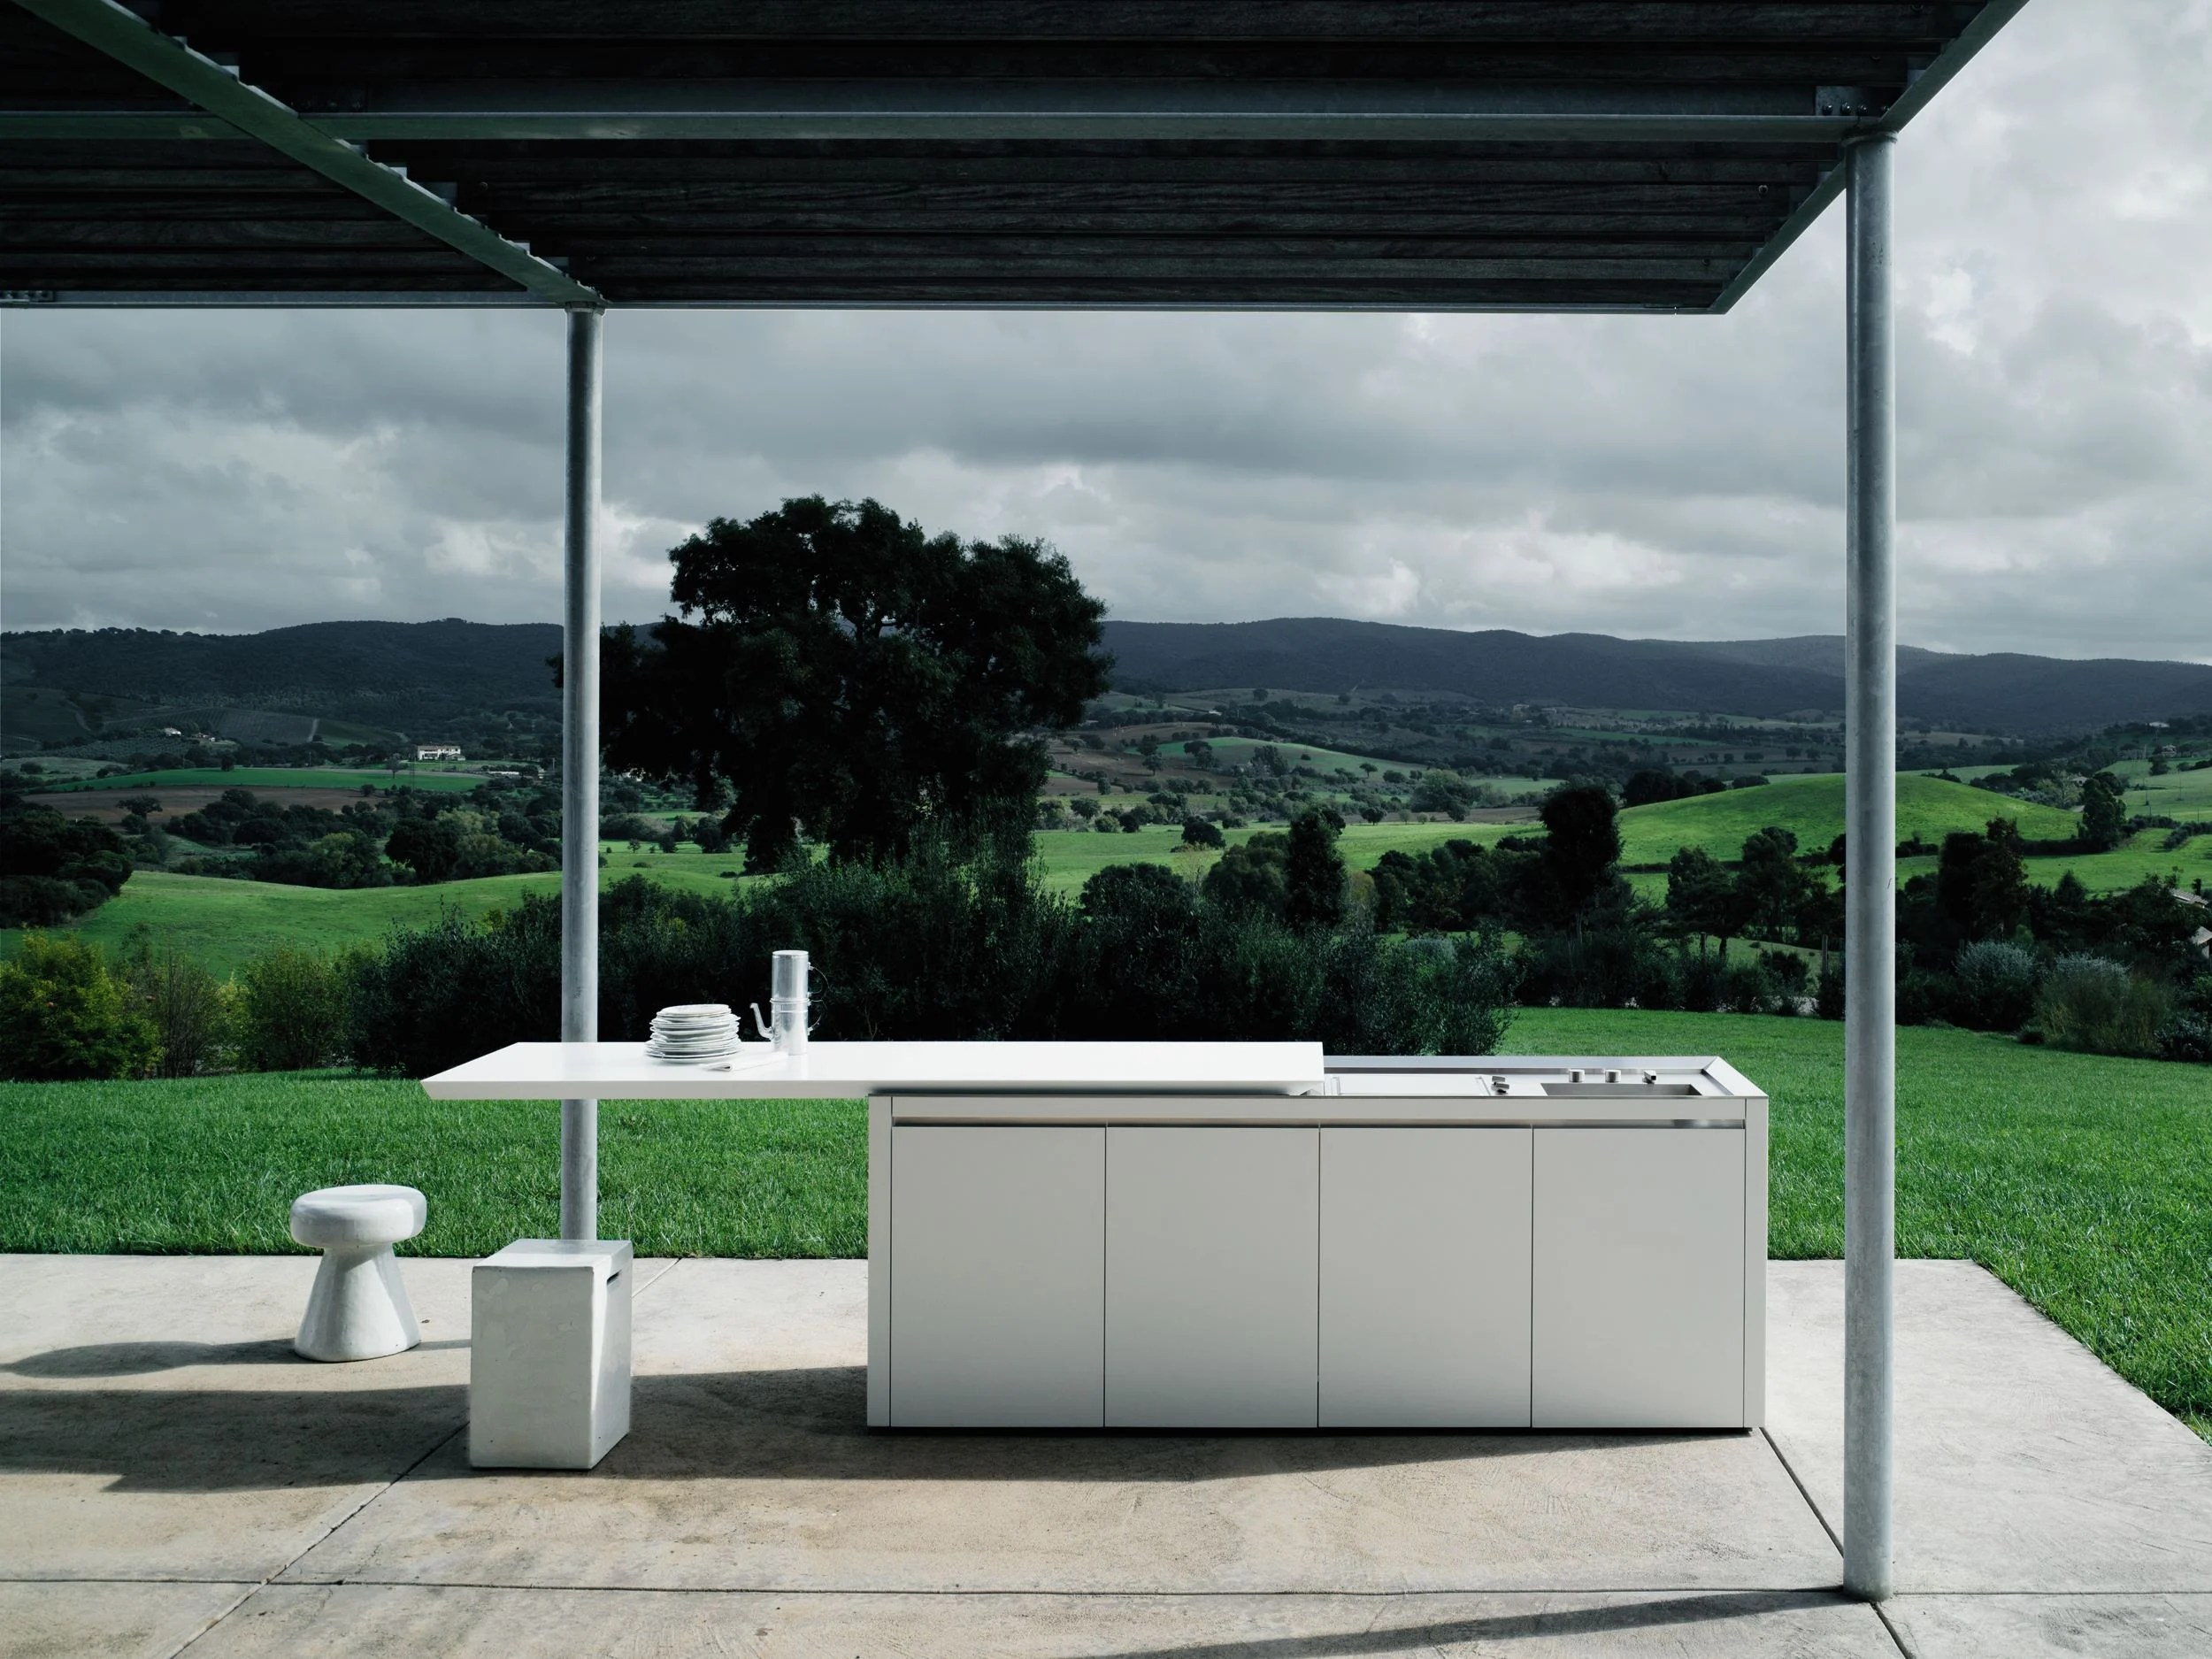 Cuisine Boffi Corian Outdoor Kitchen K2 Outdoor By Boffi Design Norbert